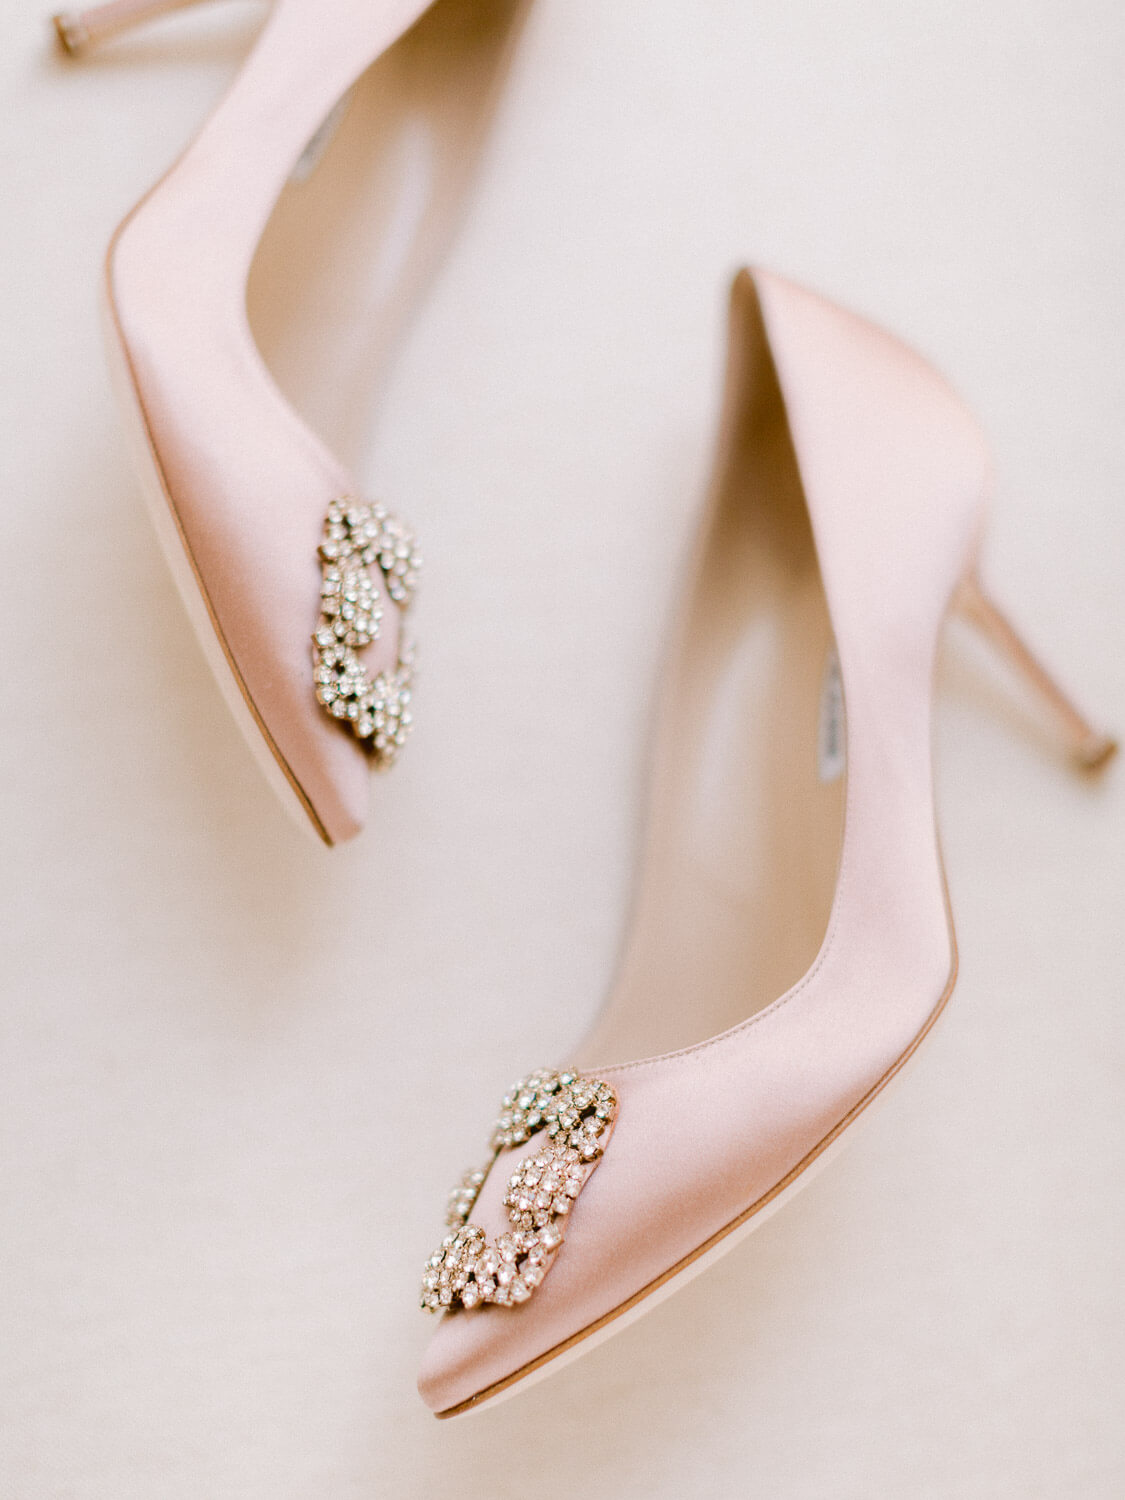 Manolo Blahnik salmon satin pumps with an embellished front detail by Portugal Wedding Photographer